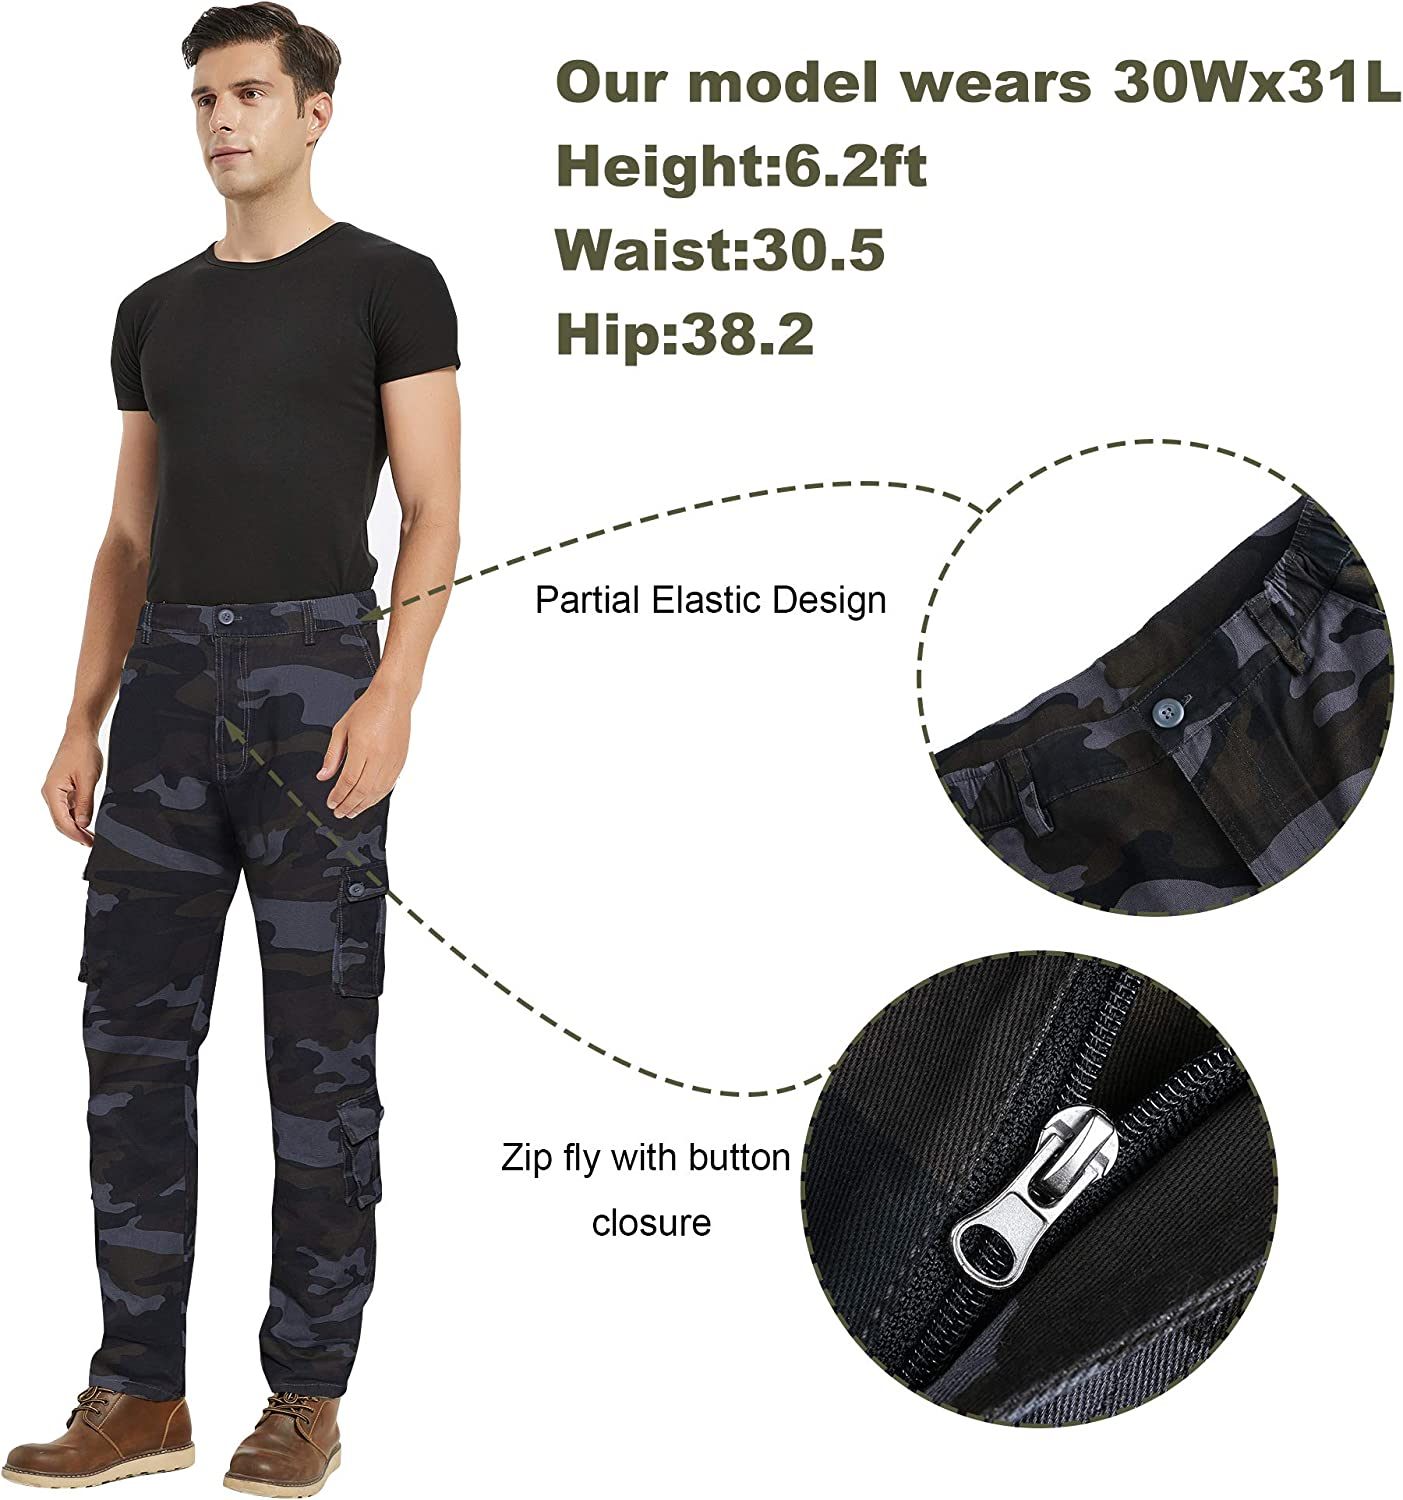 APTRO Mens Cargo Pants Relaxed Fit Multi-Pockets Work Pants Outdoor Casual Pants with Partial Elastic Waist